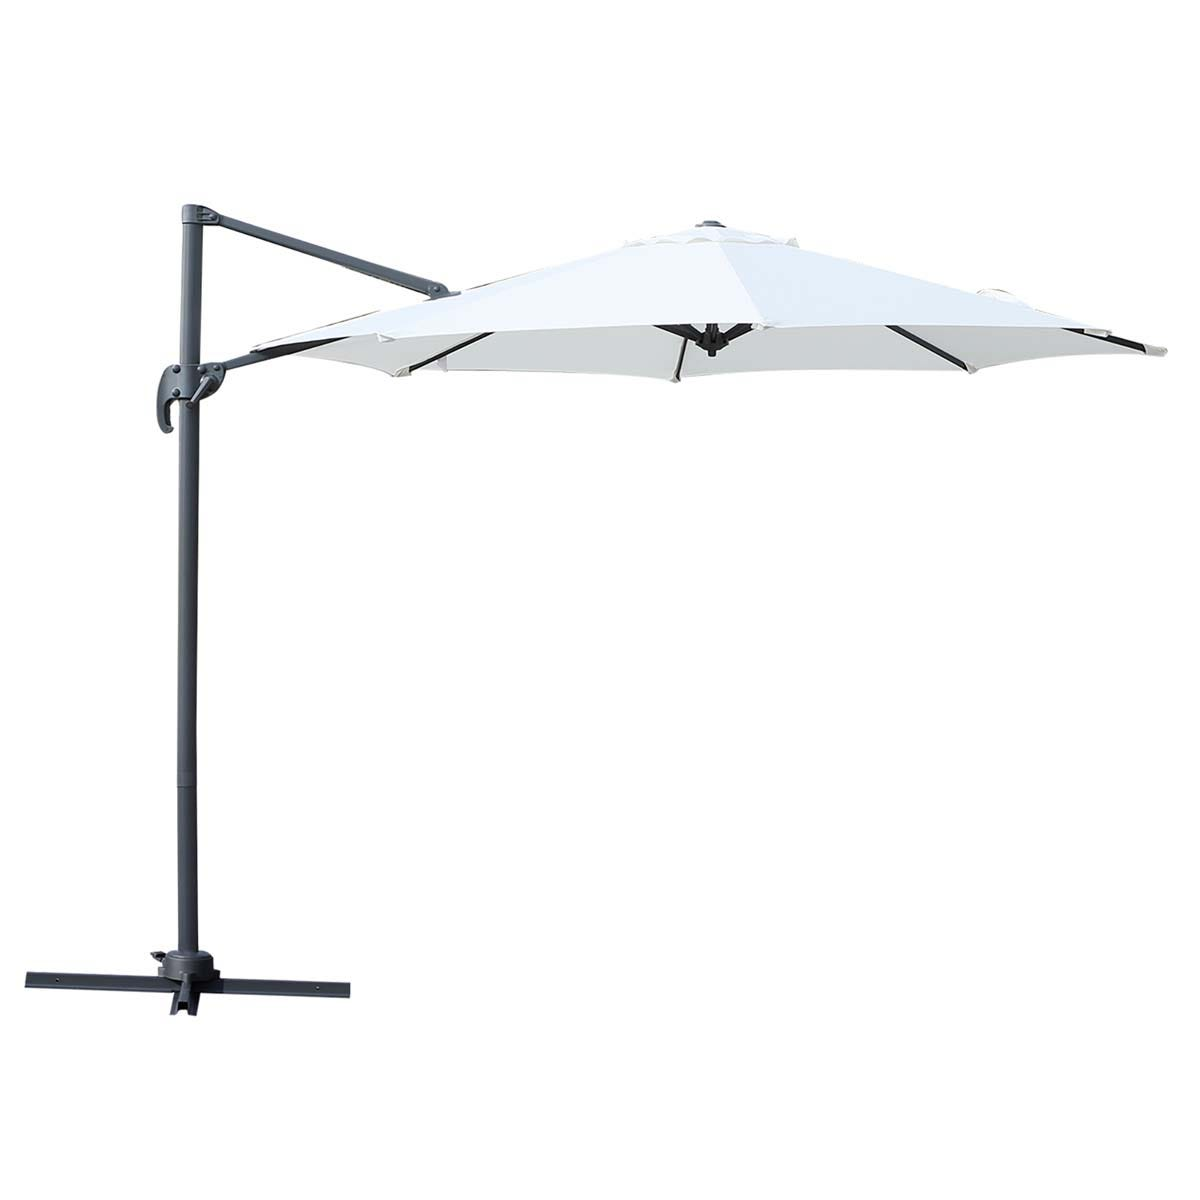 Outsunny Roma Cantilever Parasol with 360 Rotation (base not included) - Cream